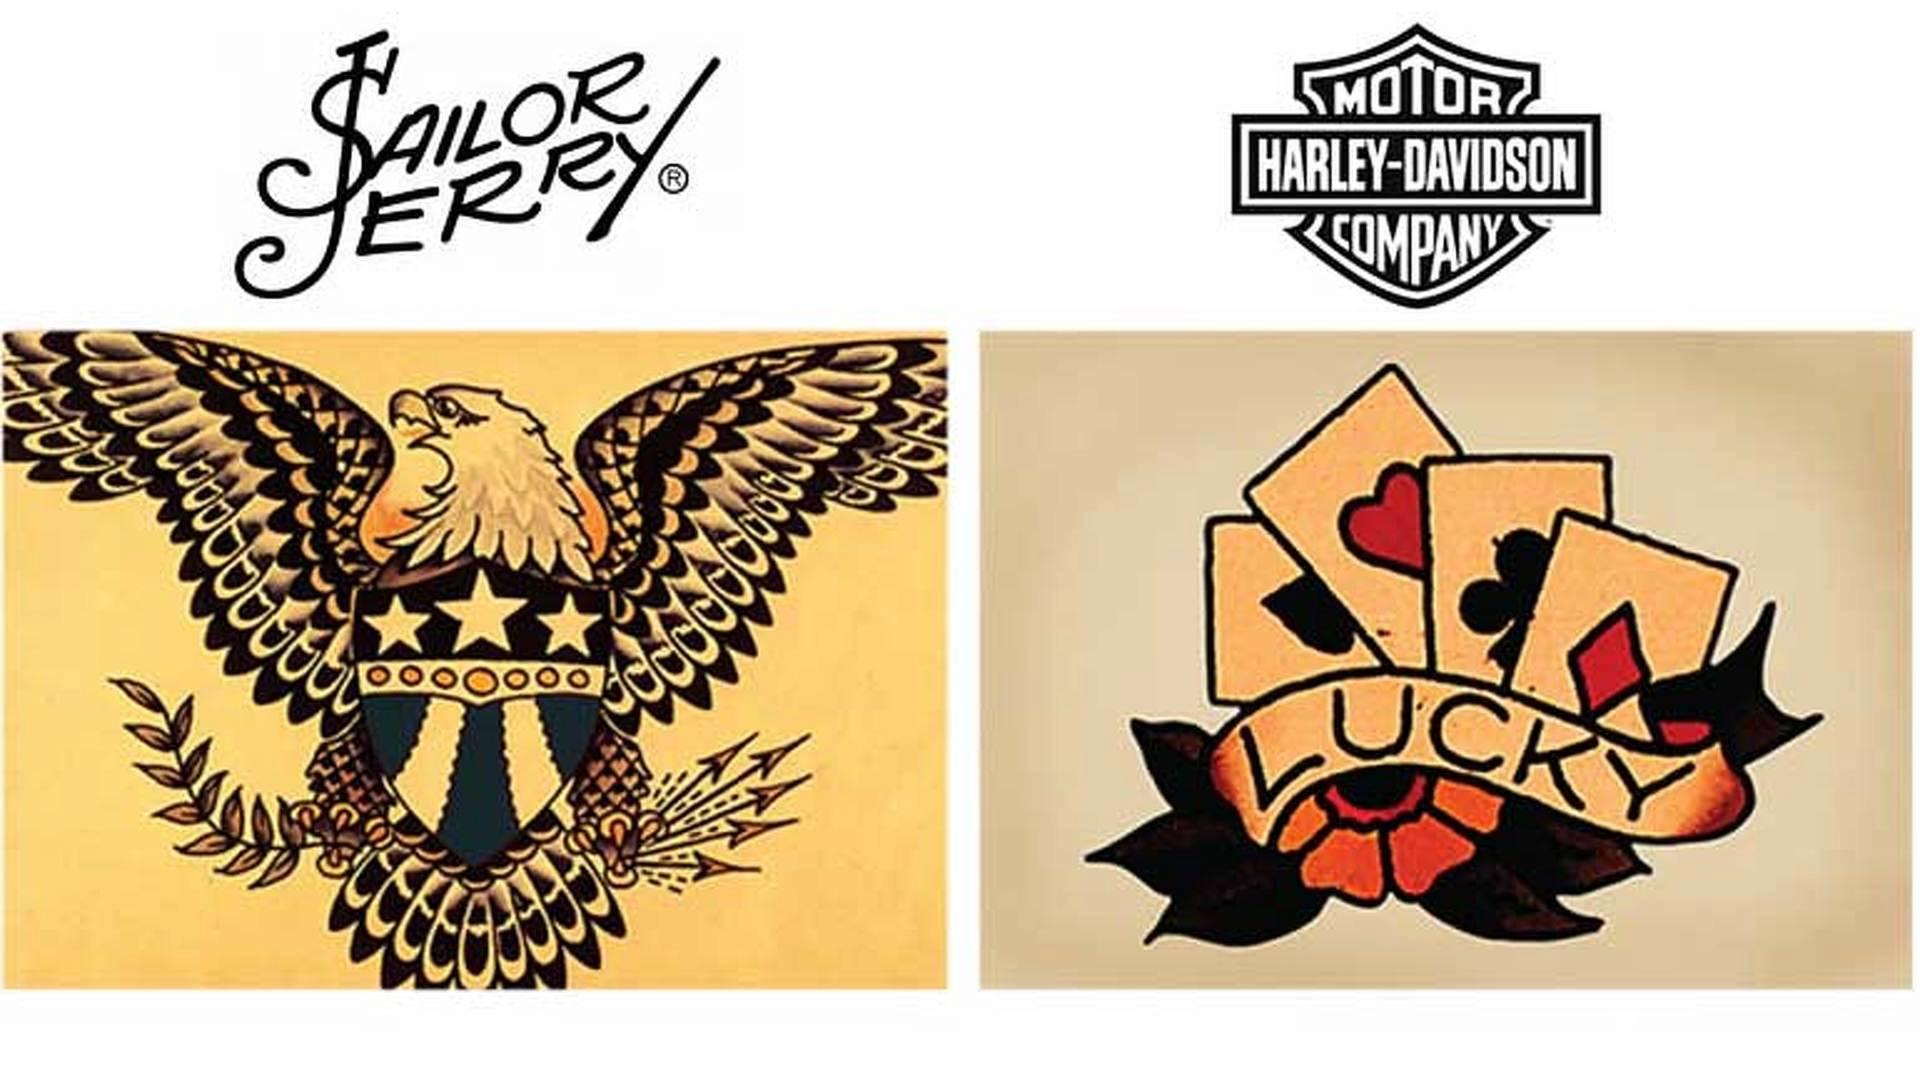 Sailor Jerry Teams With Harley Davidson